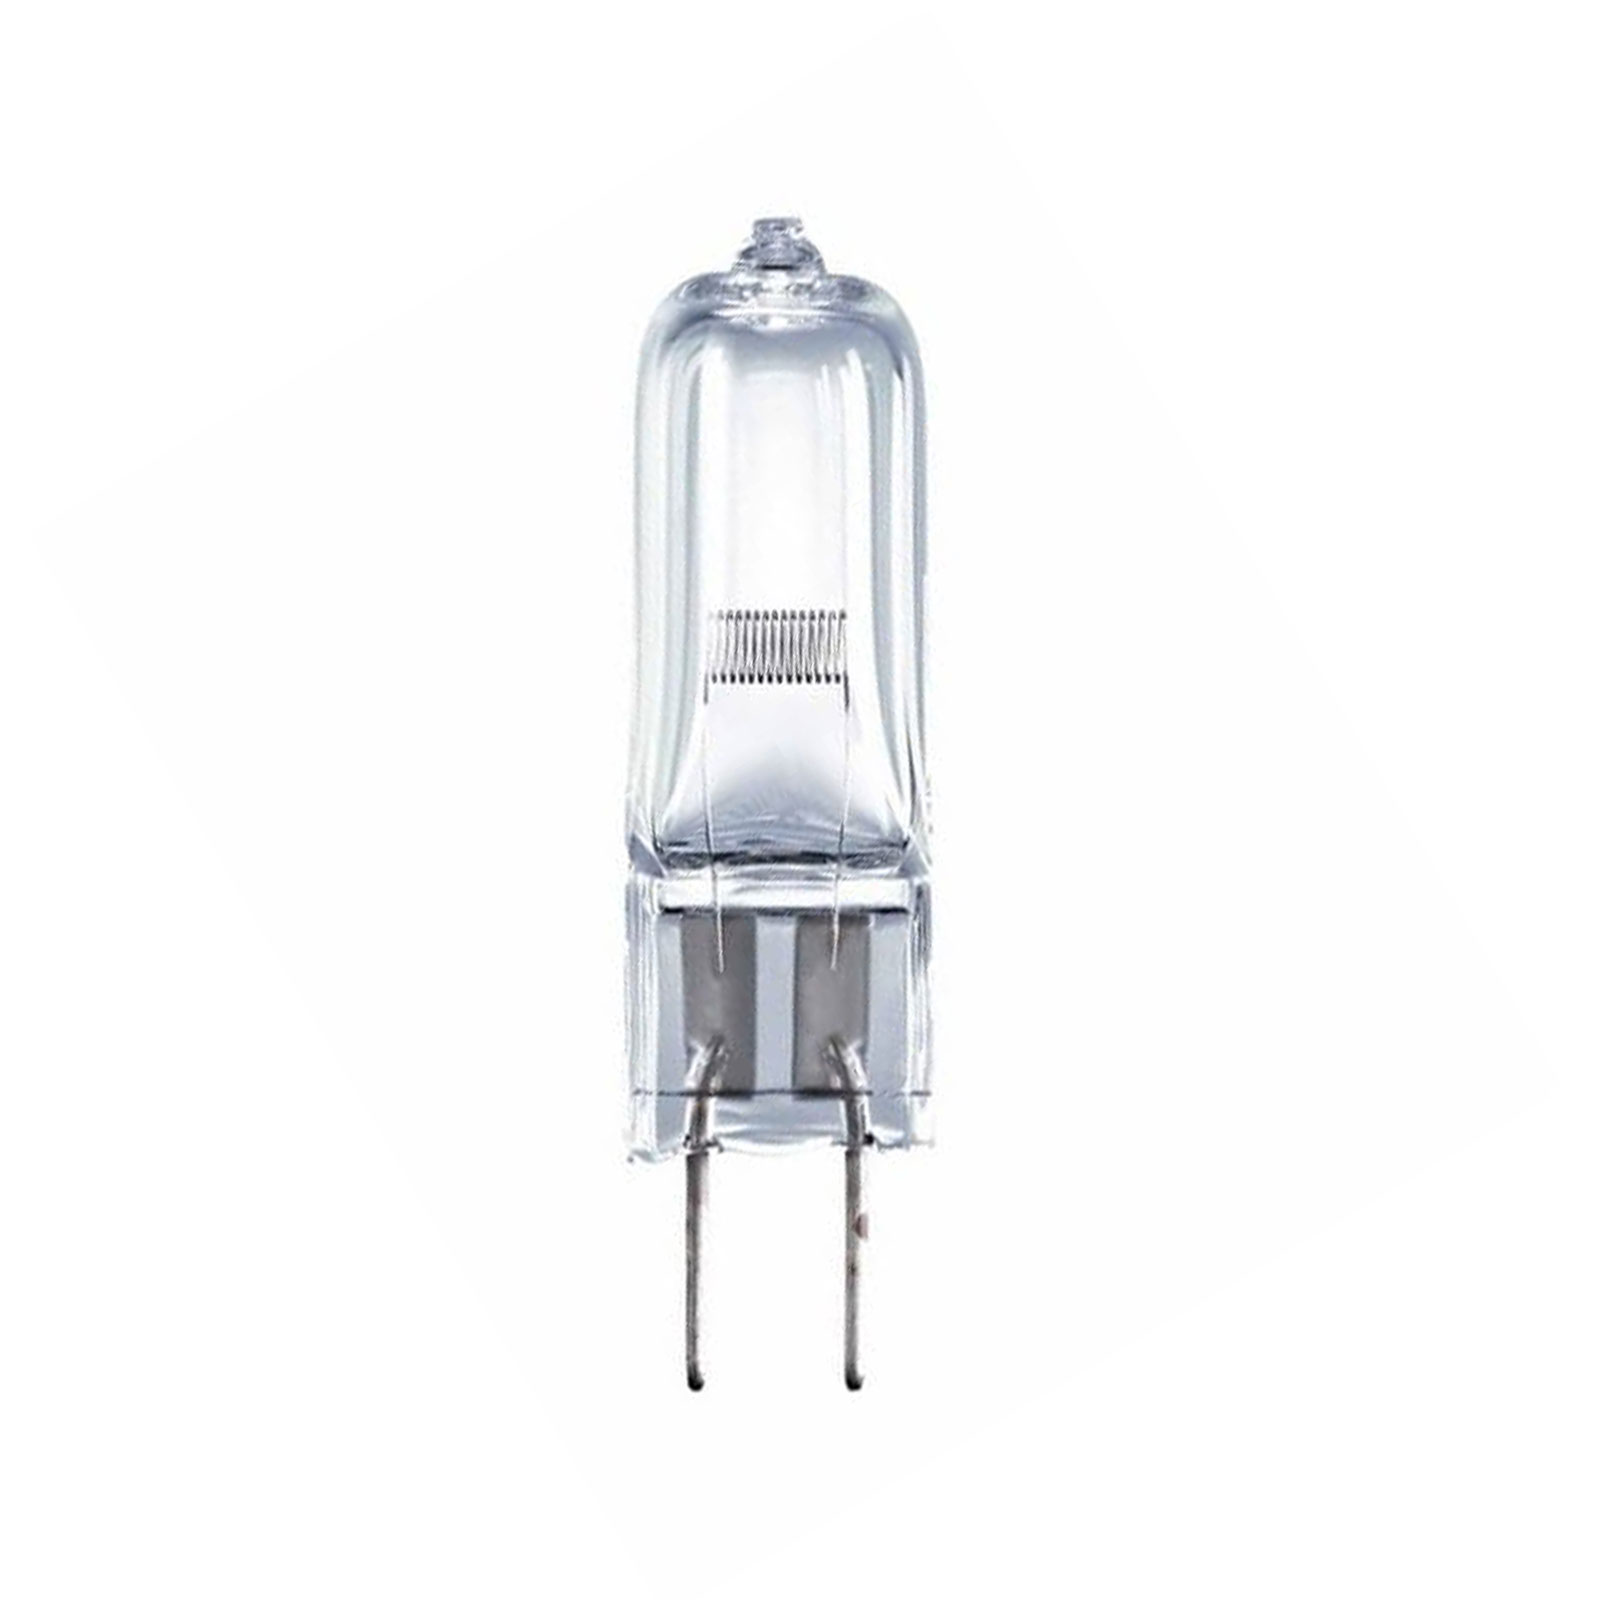 Osram 24v 150w Replacement Lamp